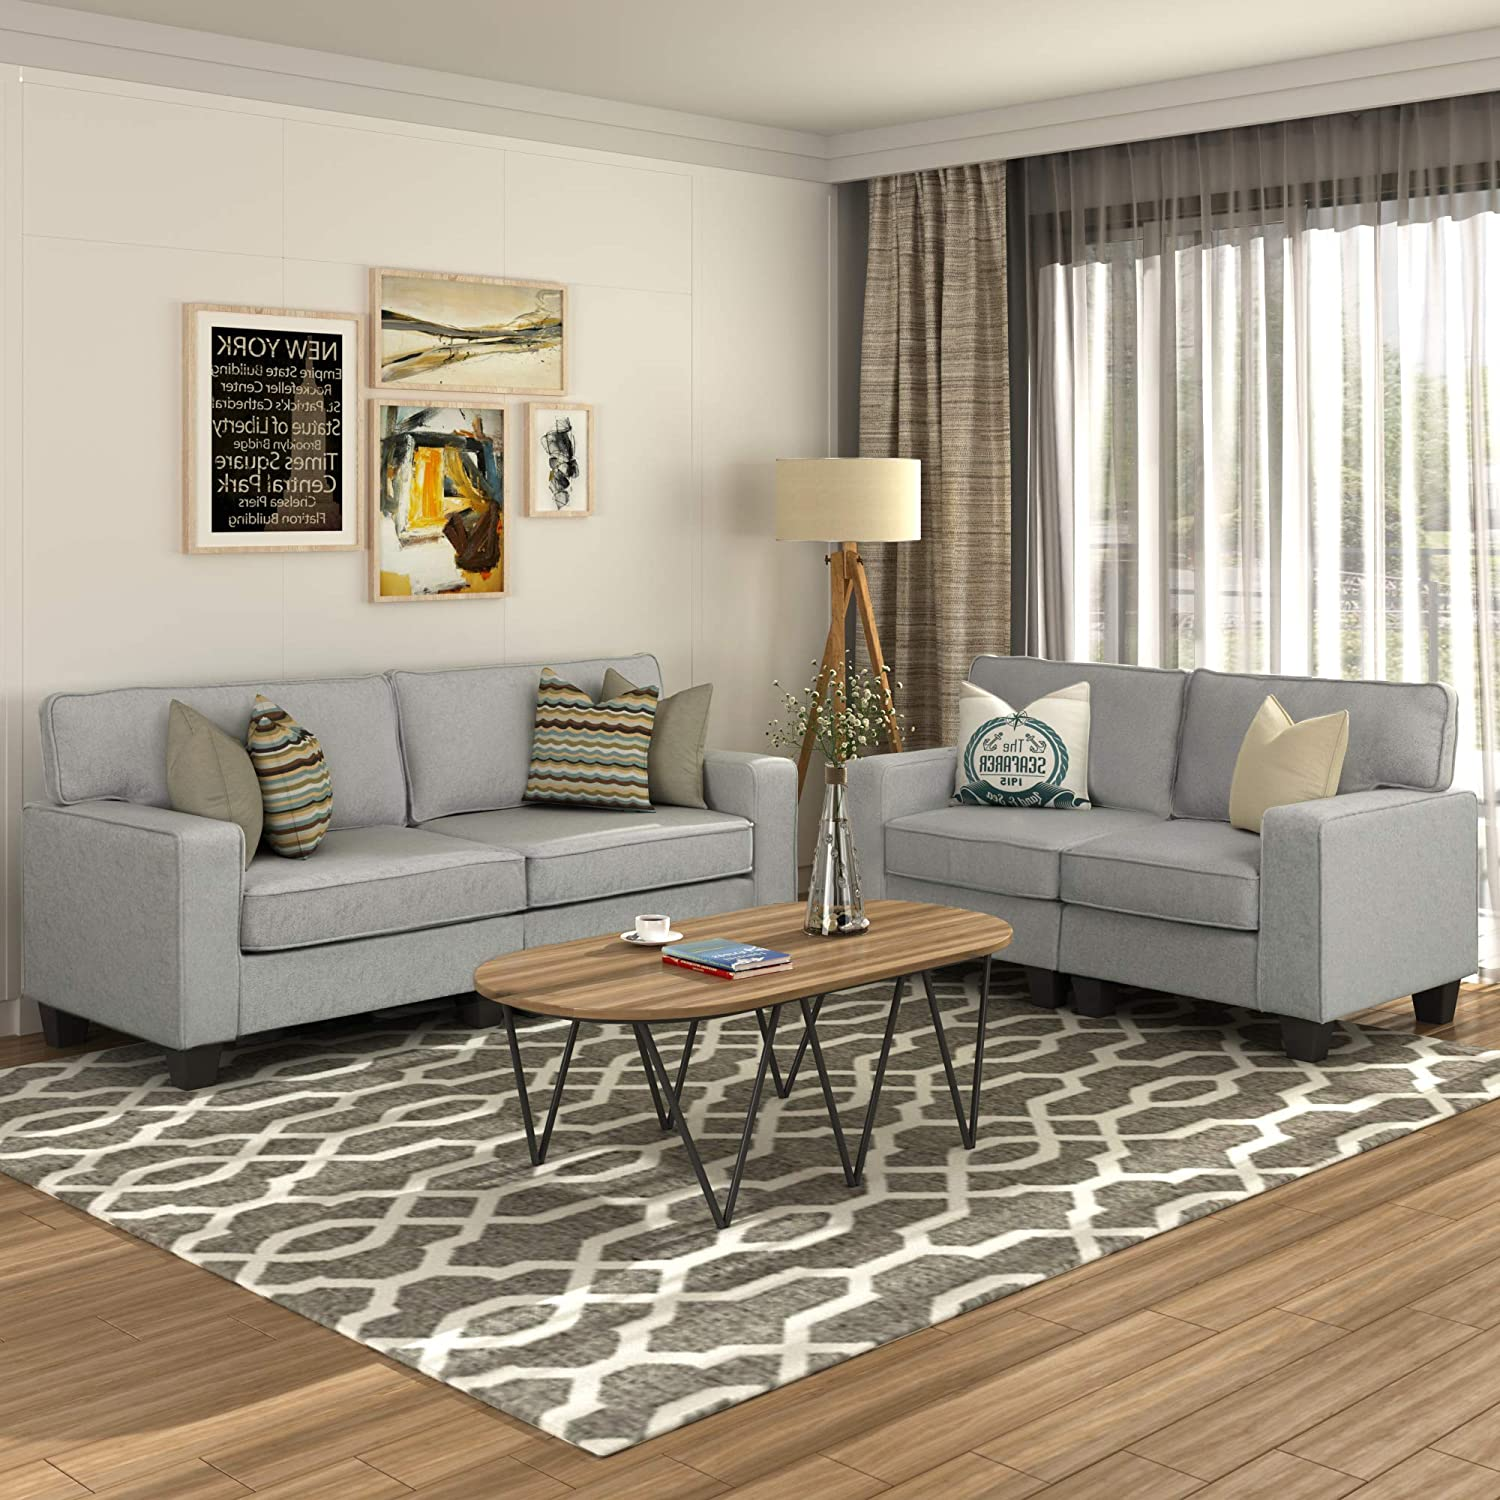 11 Piece Sofa Sets, Living Room Sofas and Couches, Morden Style Livingroom  Furniture Set Loveseat (Gray)